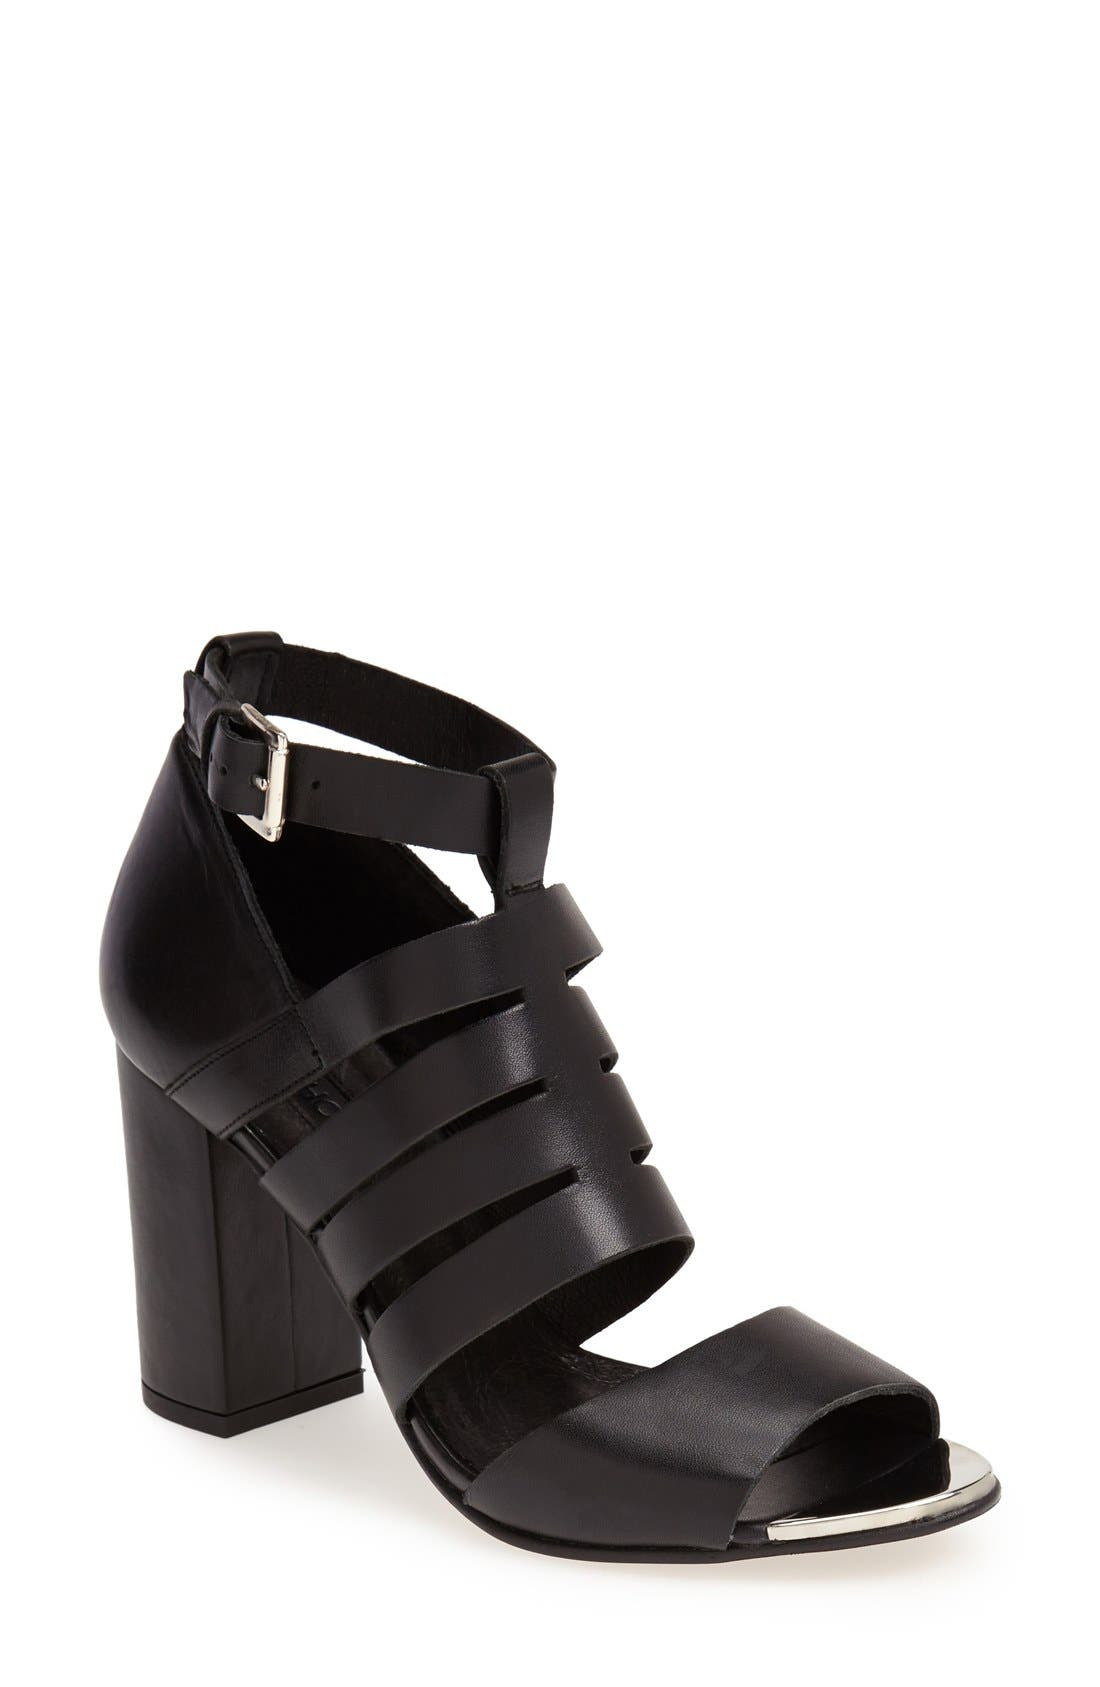 Alternate Image 1 Selected - Topshop 'Glare' Cutout Gladiator Sandal (Women)